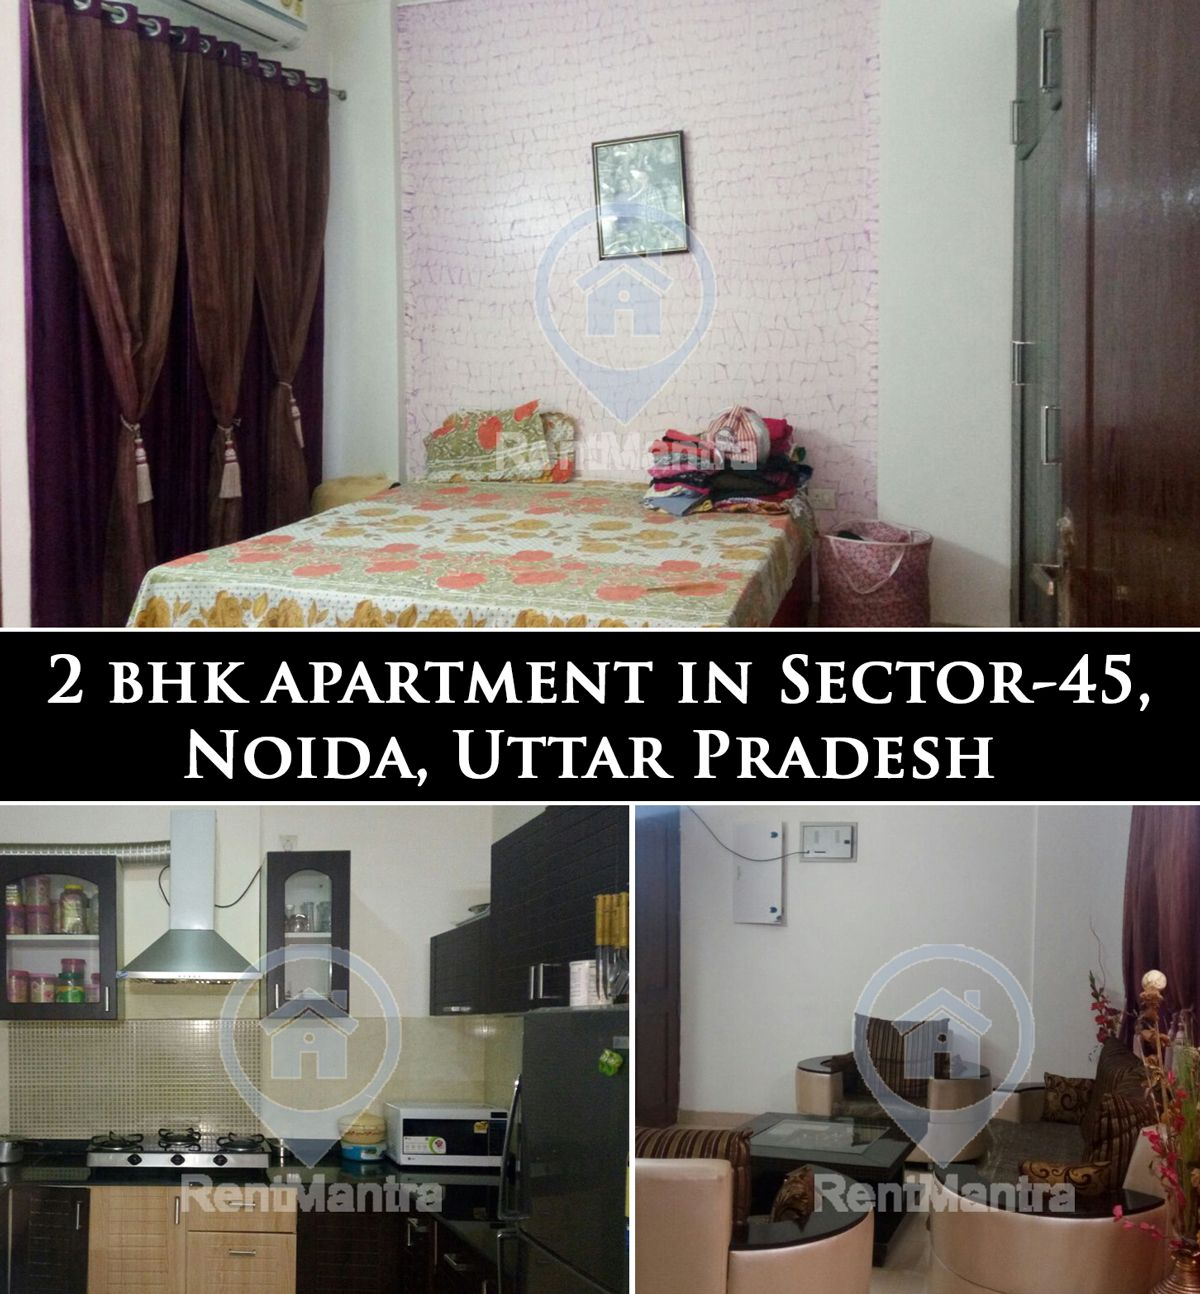 PROPERTY OF THE WEEK: 2 BHK Apartment in Sector-45, Noida, Uttar Pradesh(Broker Free). Includes Facilities like Cupboards, Modular kitchen and Much More. For Any Enquiry Give Us a Missed Call @ 070787-70787 Or Visit: www.rentmantra.com #2bhk #apartmentforrent #sector45 #Noida #rentmantra #brokerfree